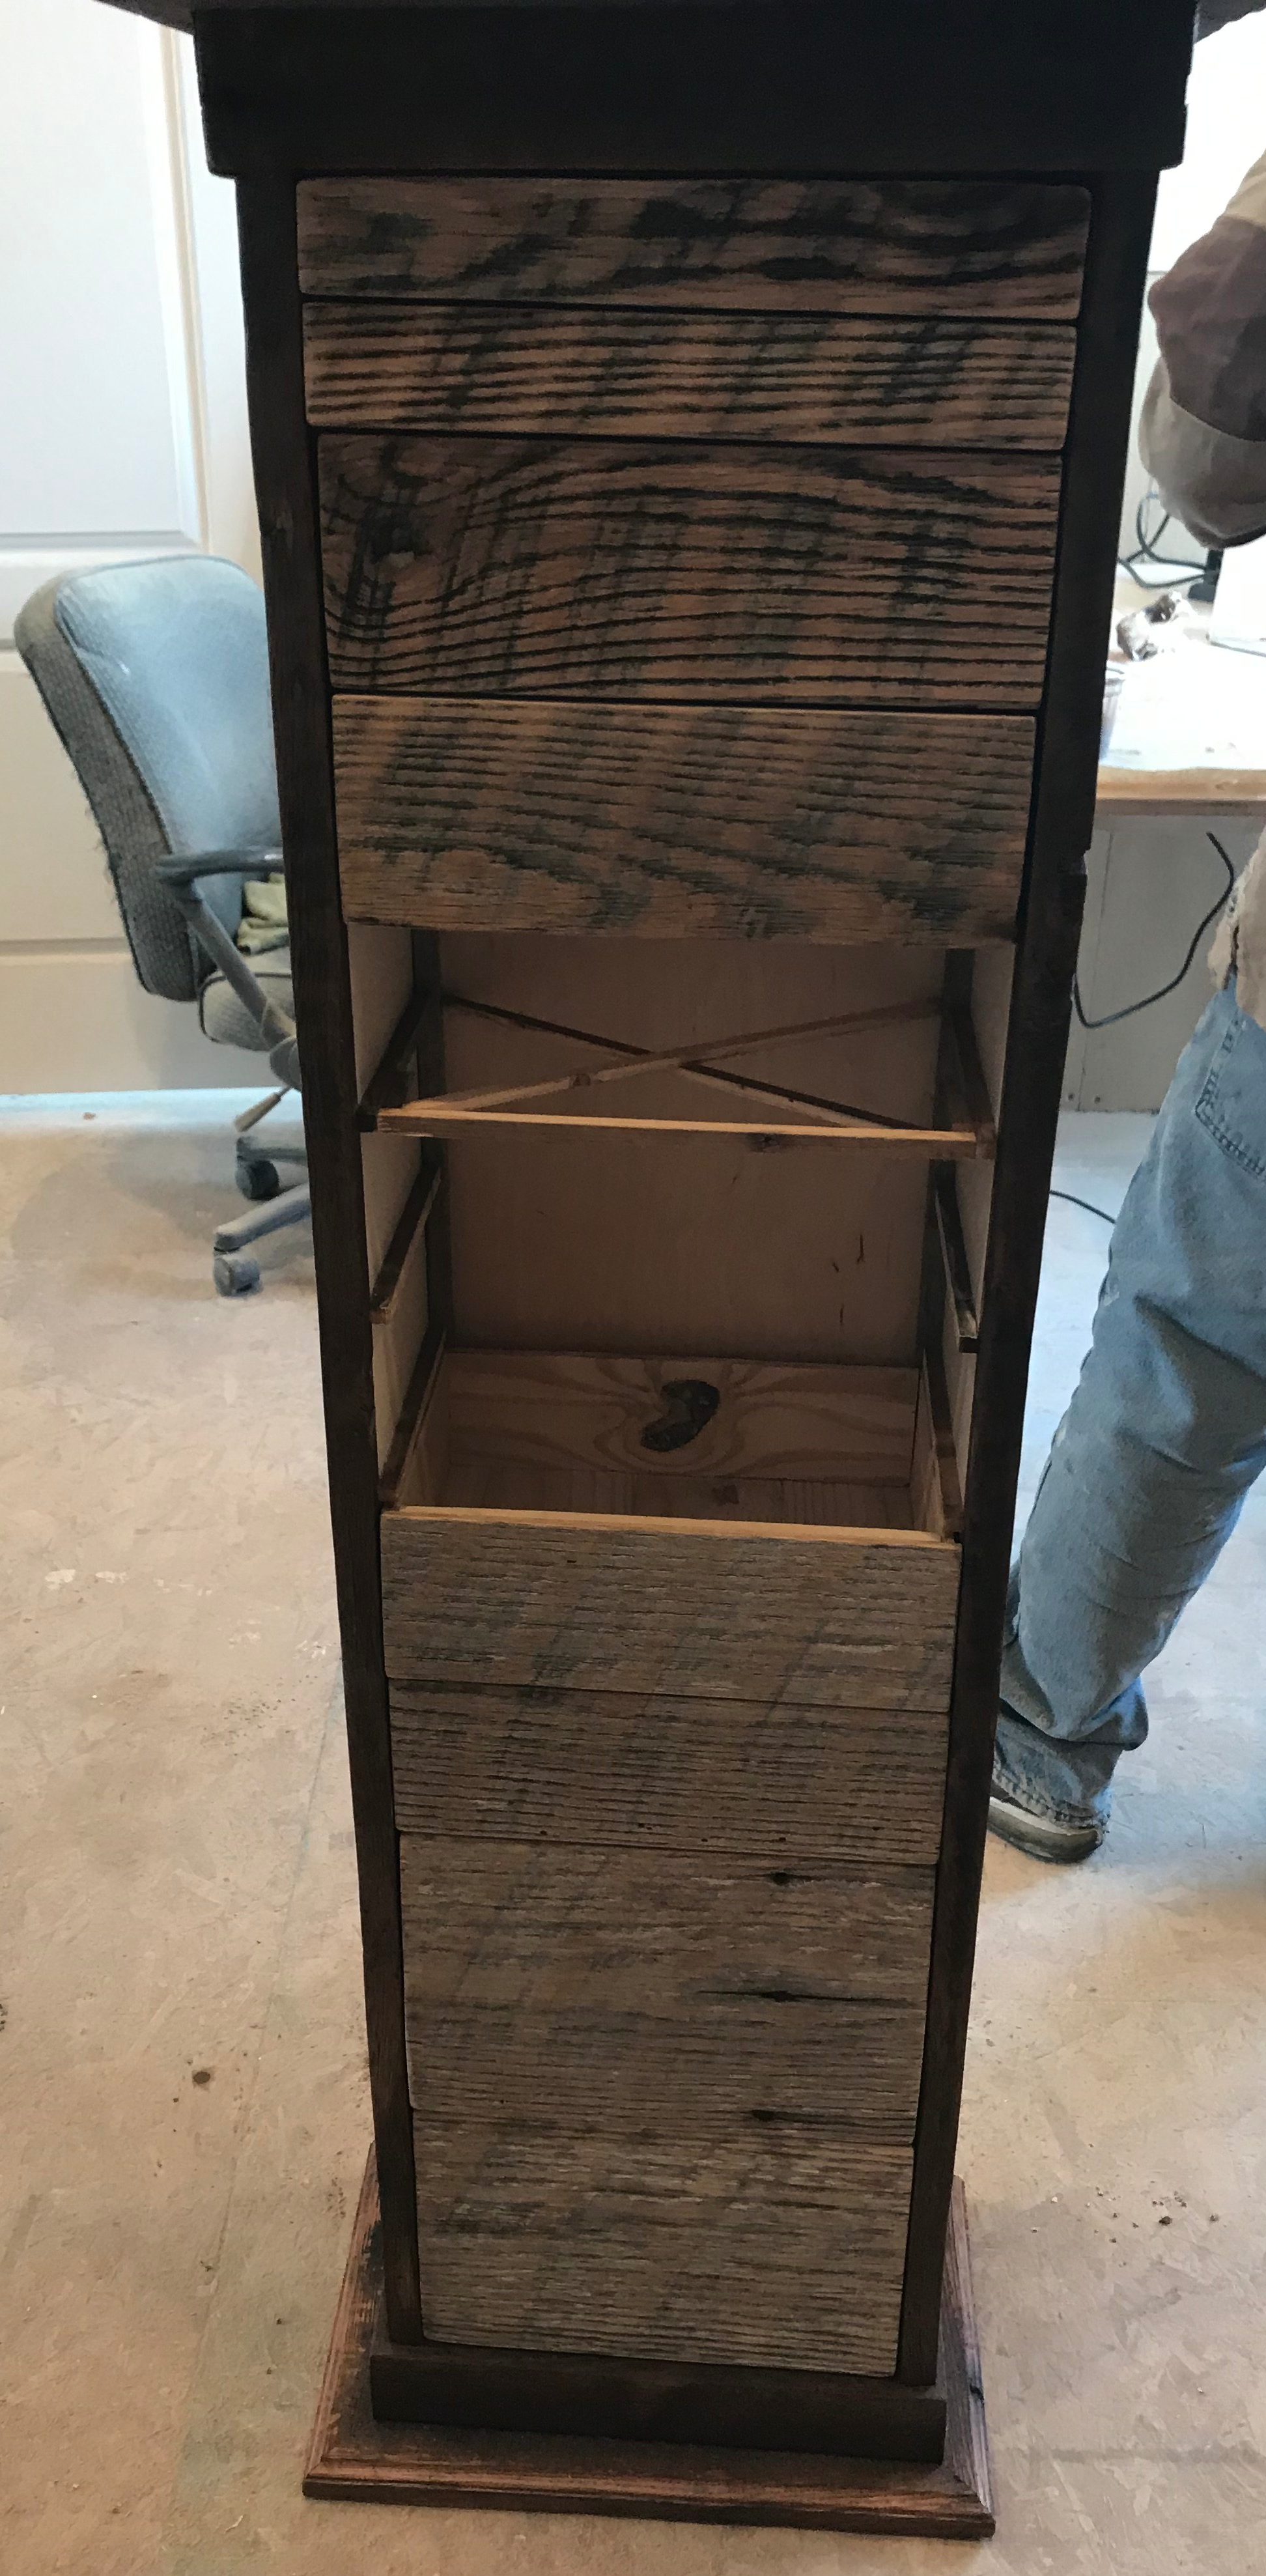 Tall skinny apothecary cabinet with the top four drawer fronts after being waxed, the next three are missing, and the next four drawers are not waxed